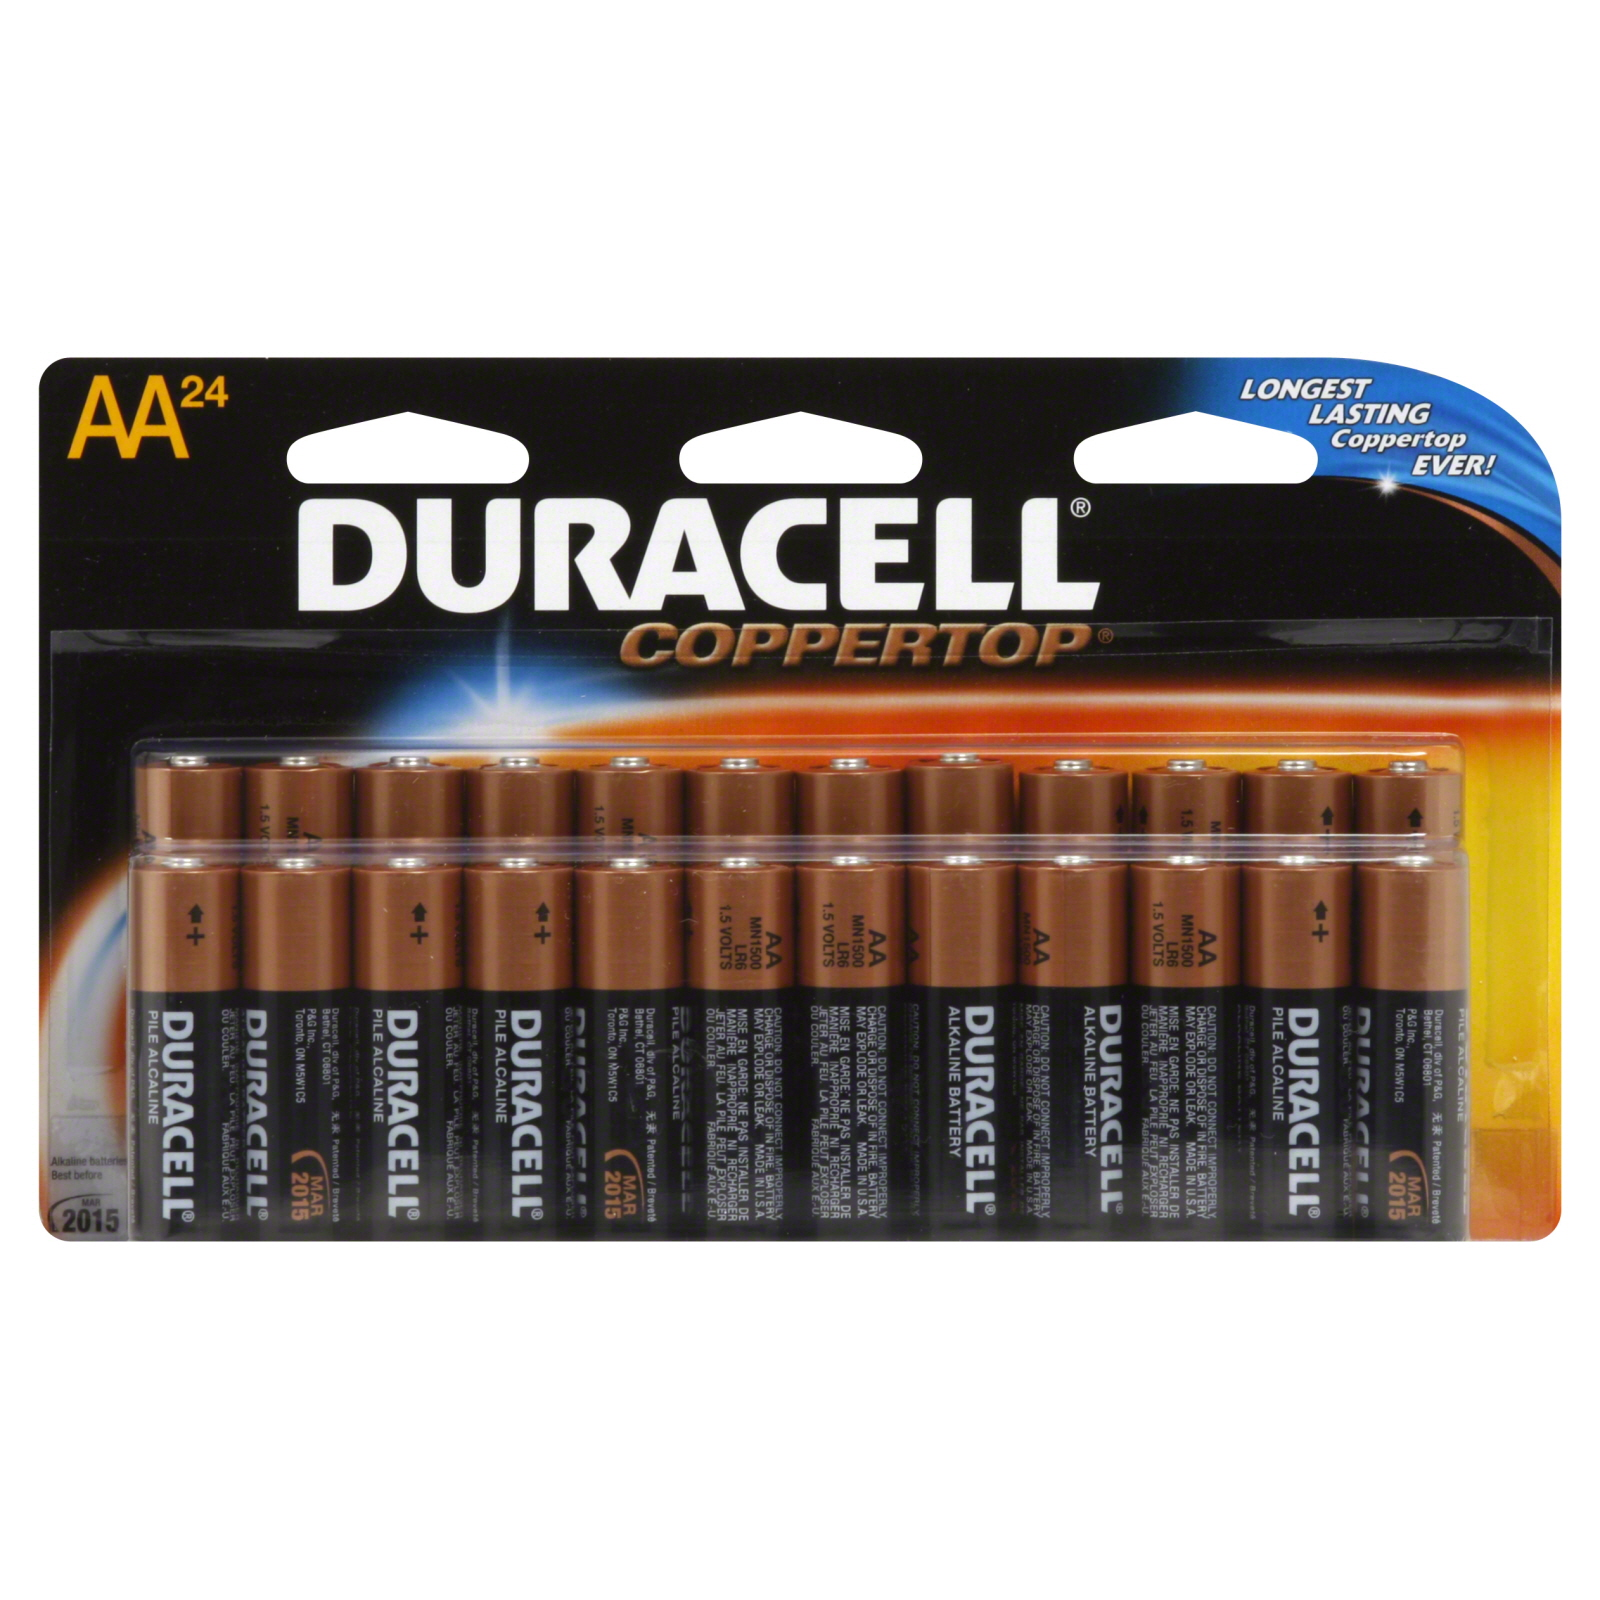 Batterie Aa Duracell 27035 Coppertop Alkaline Batteries Double Wide